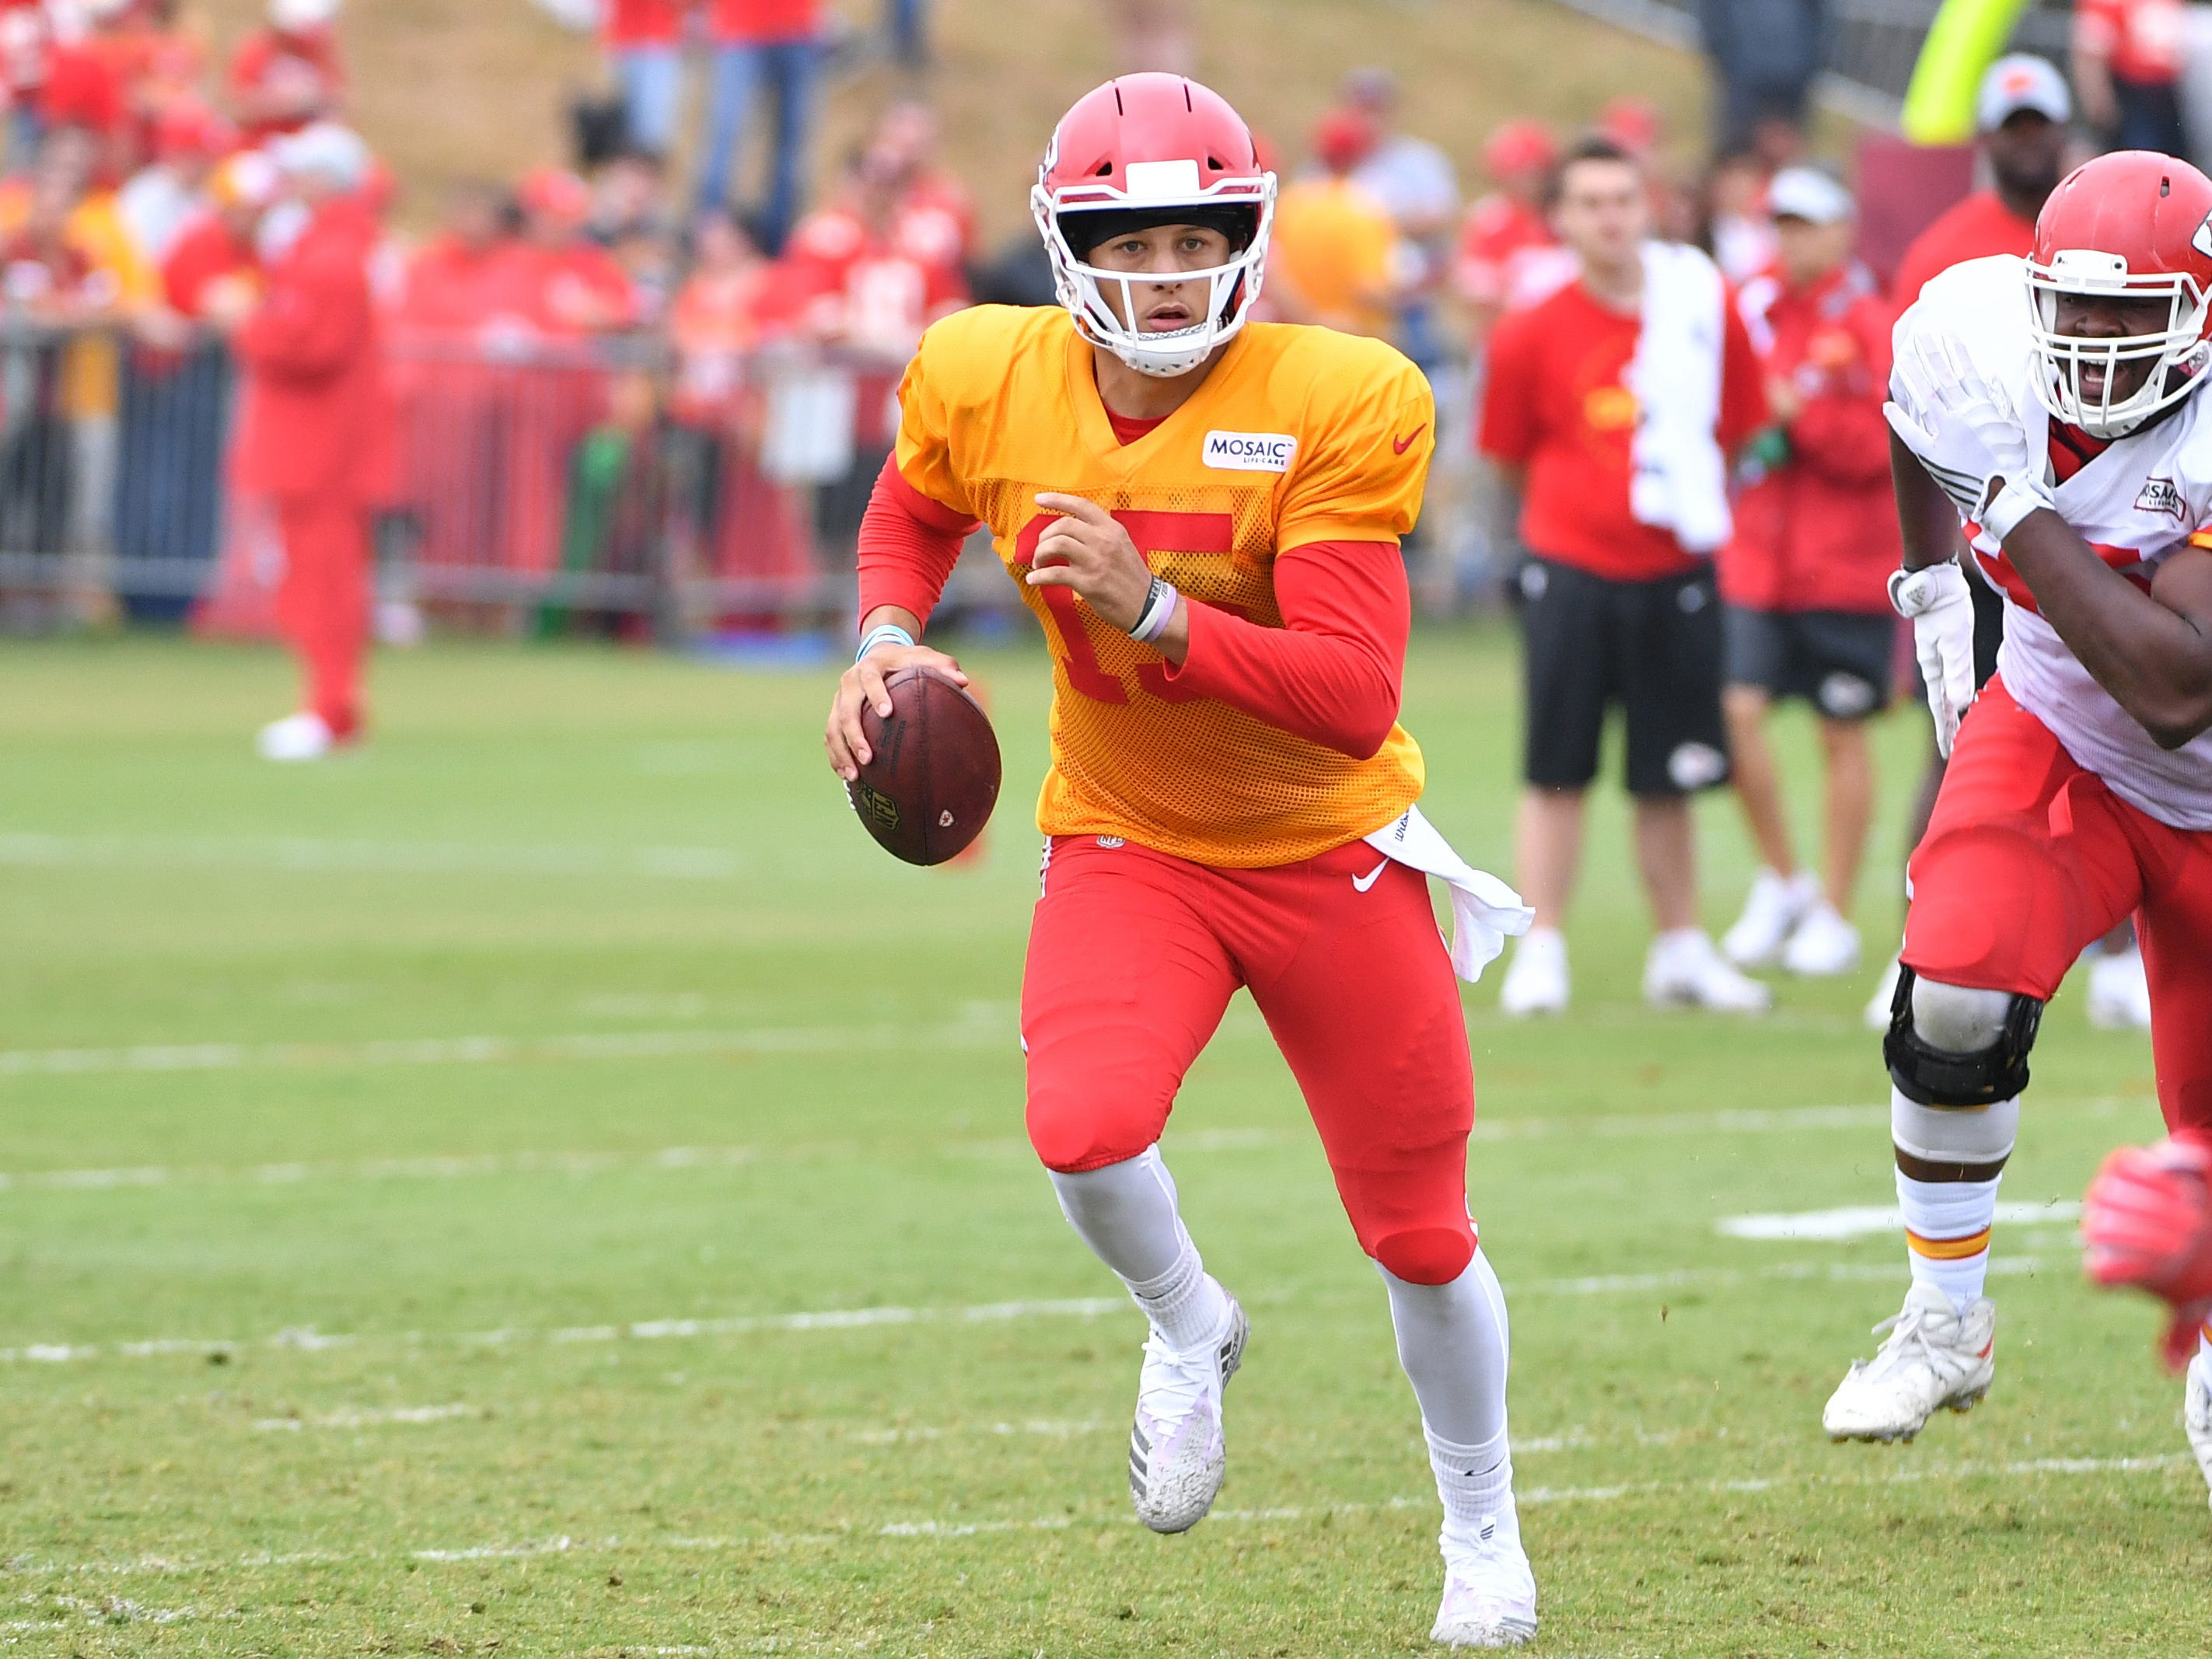 19. Chiefs (15): Patrick Mahomes couldn't ask for a better arsenal around him. But will suspect defense put a young gunslinger into holes he can't climb from?